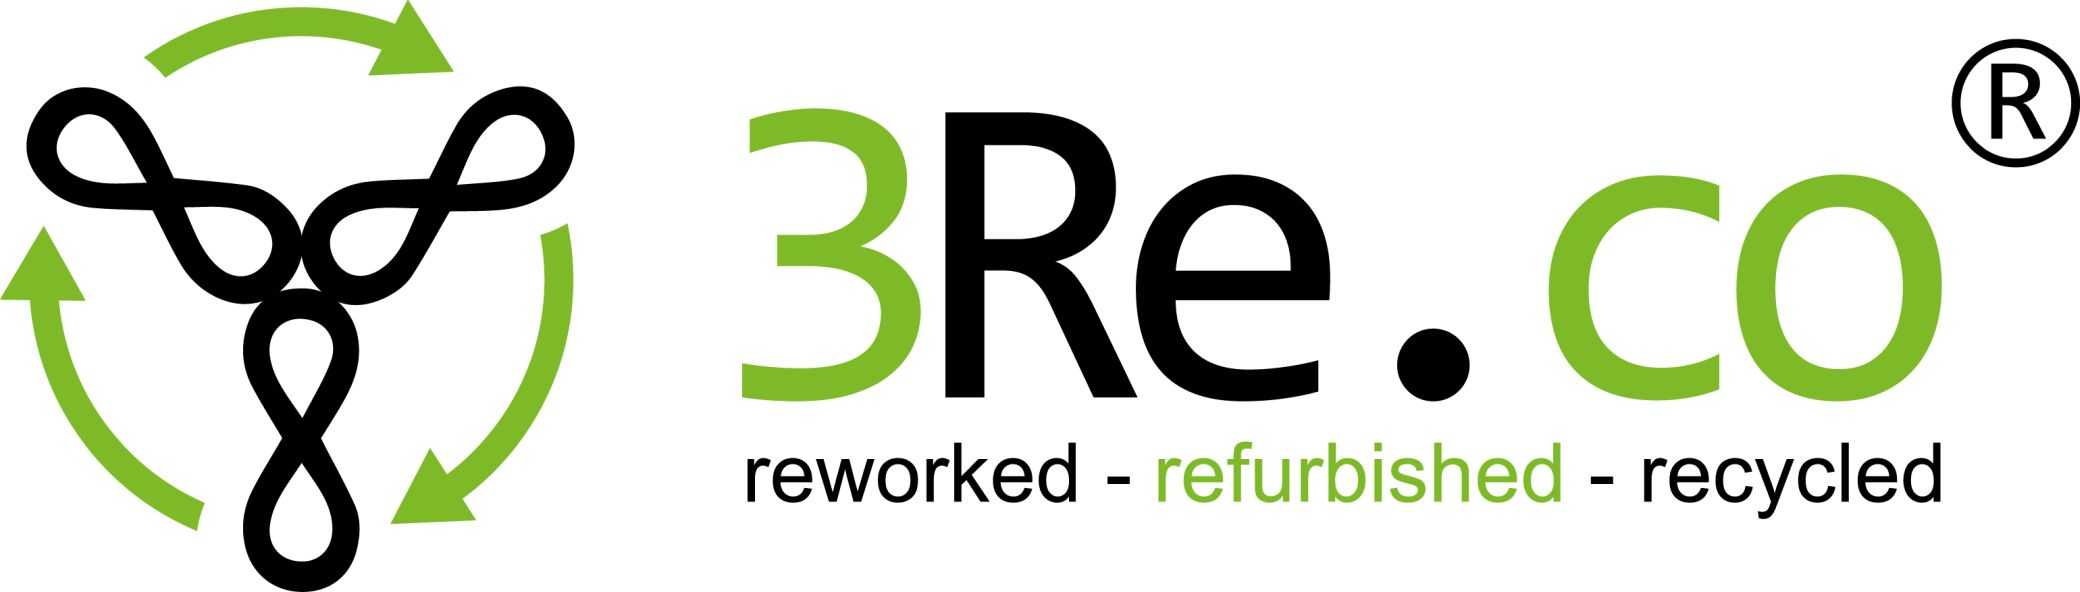 logo 3re co official